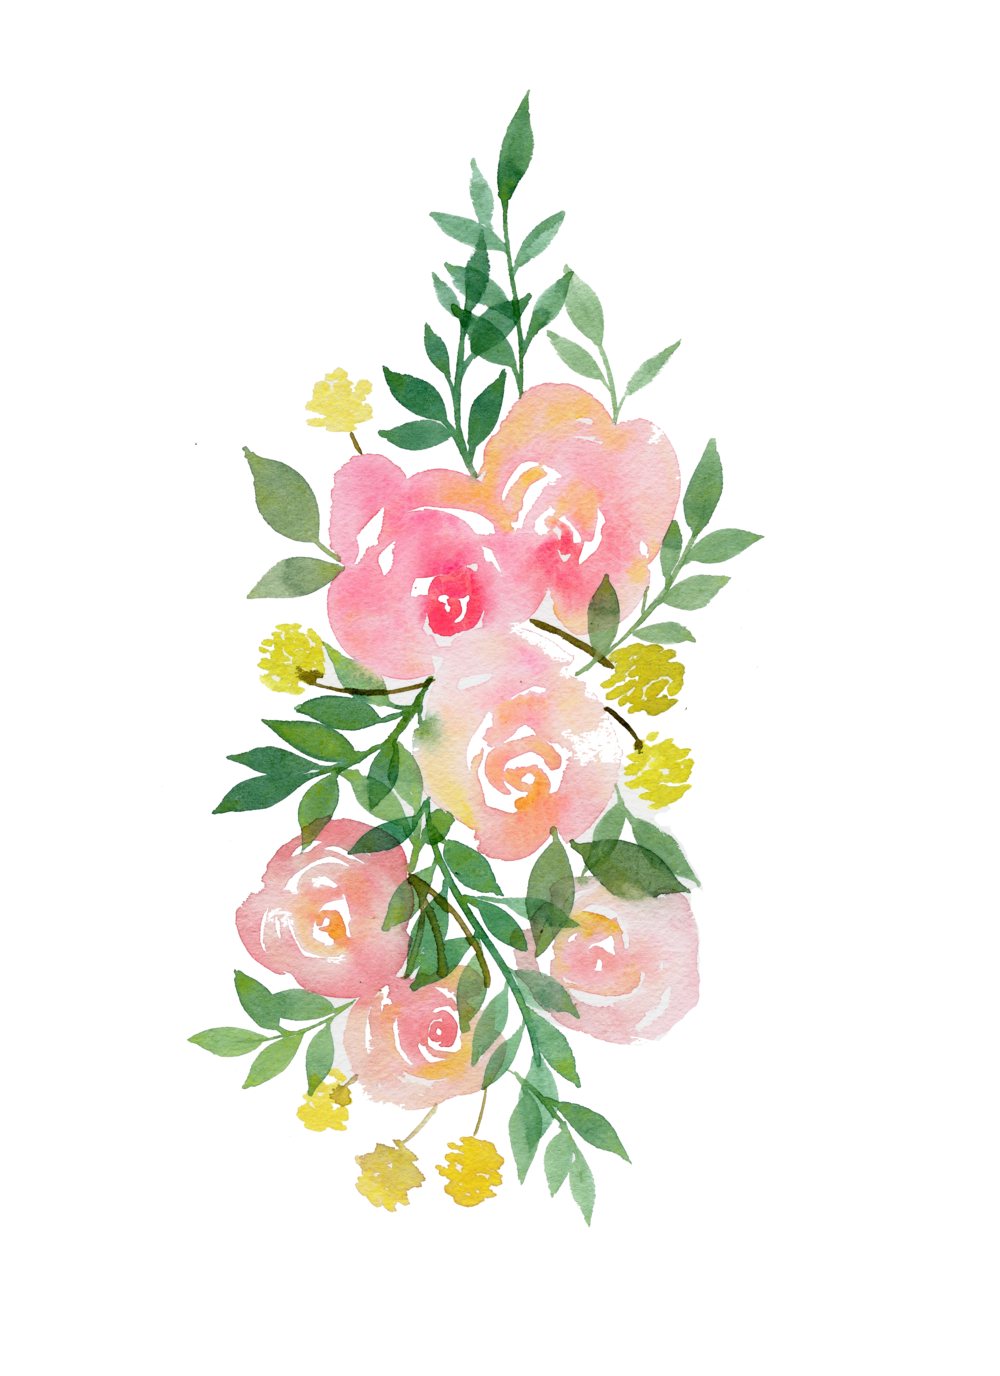 Image alanisidethingy animal jam. Pink watercolor flower png image royalty free download